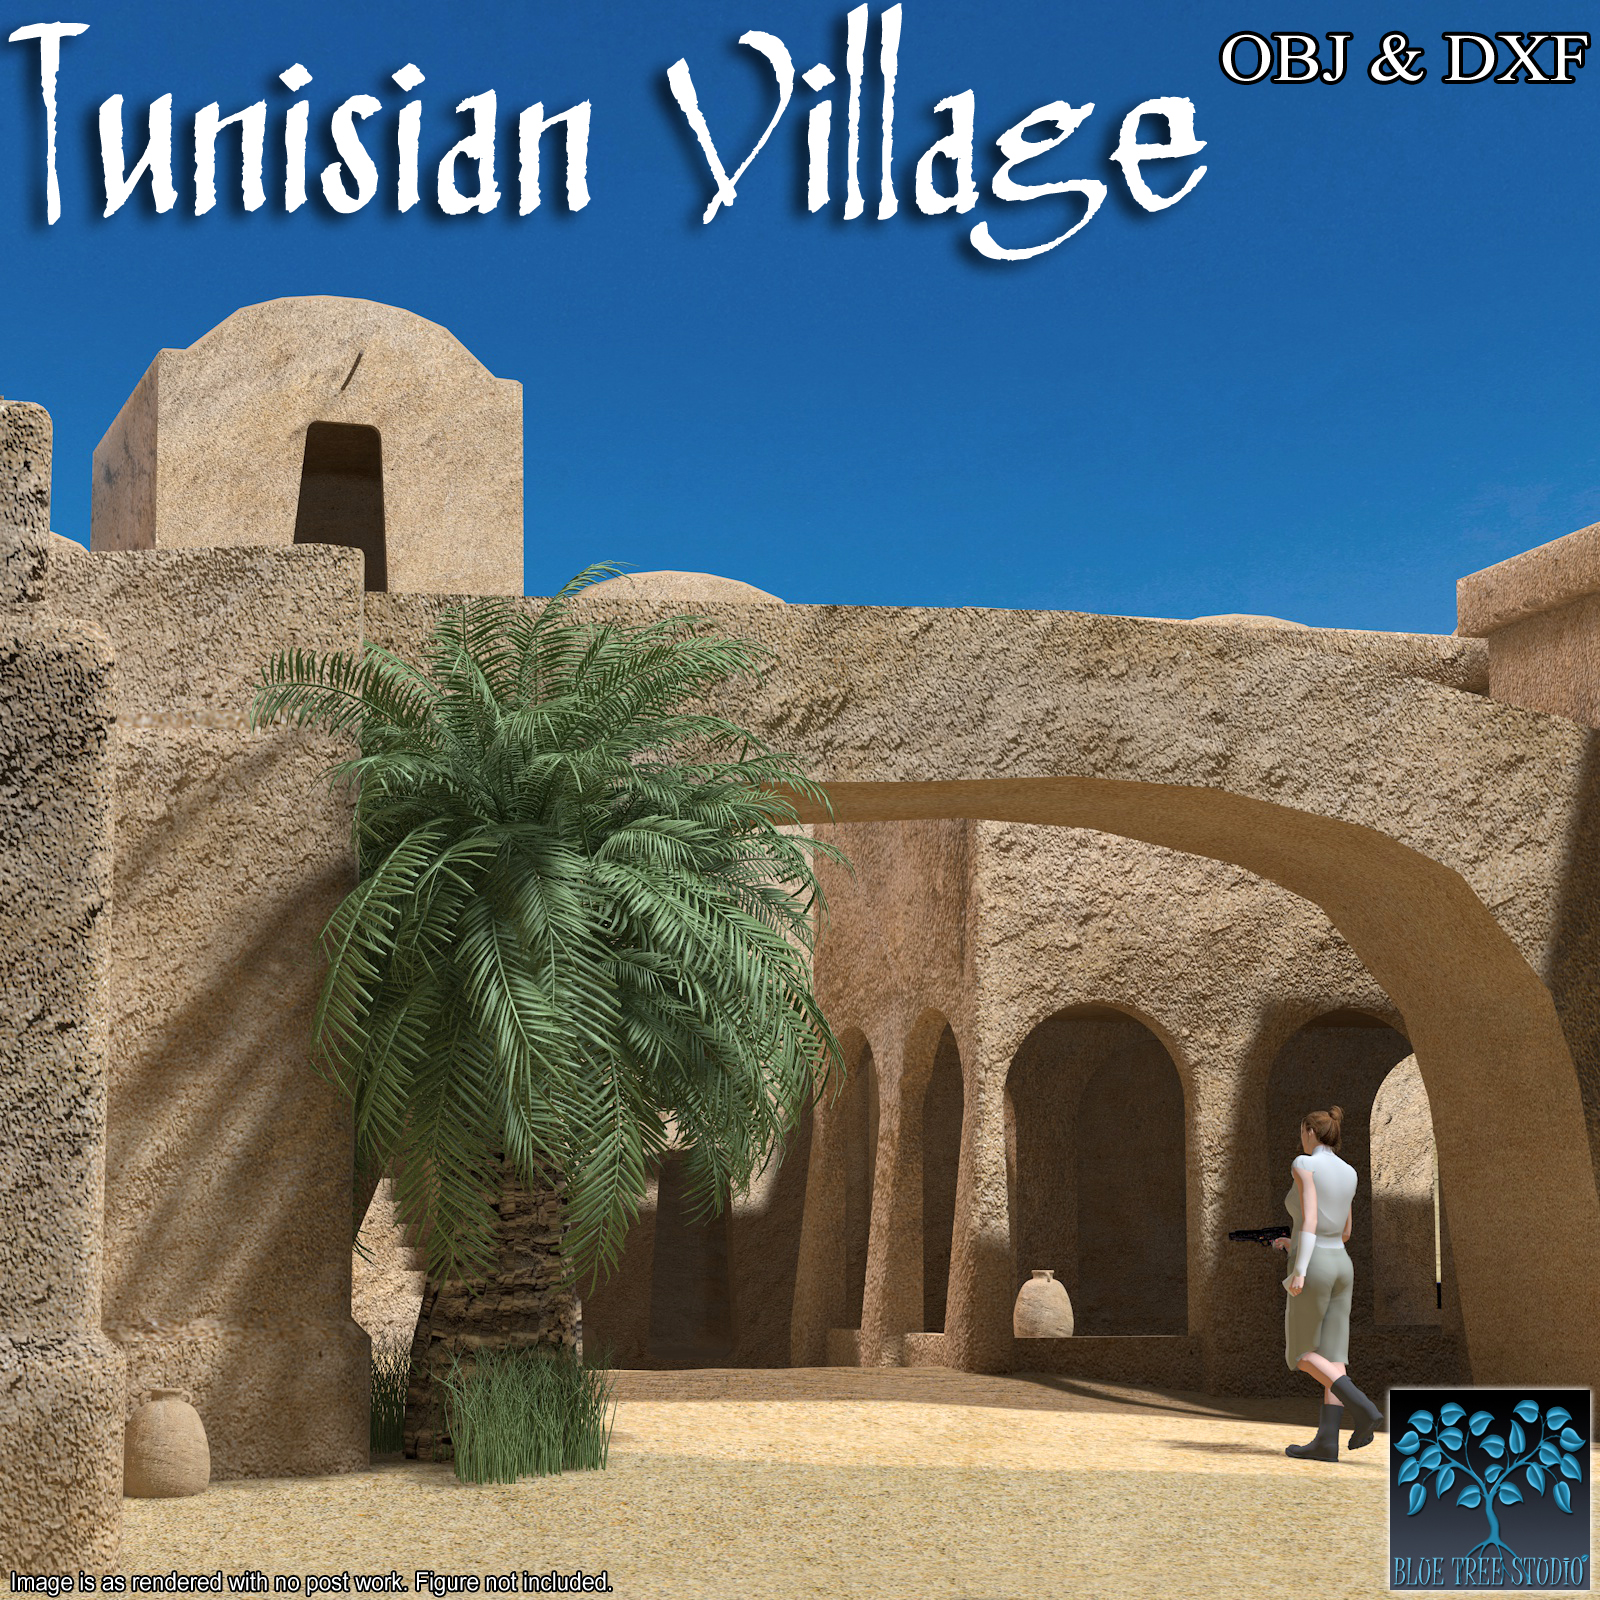 Tunisian Village OBJ & DXF - Extended License